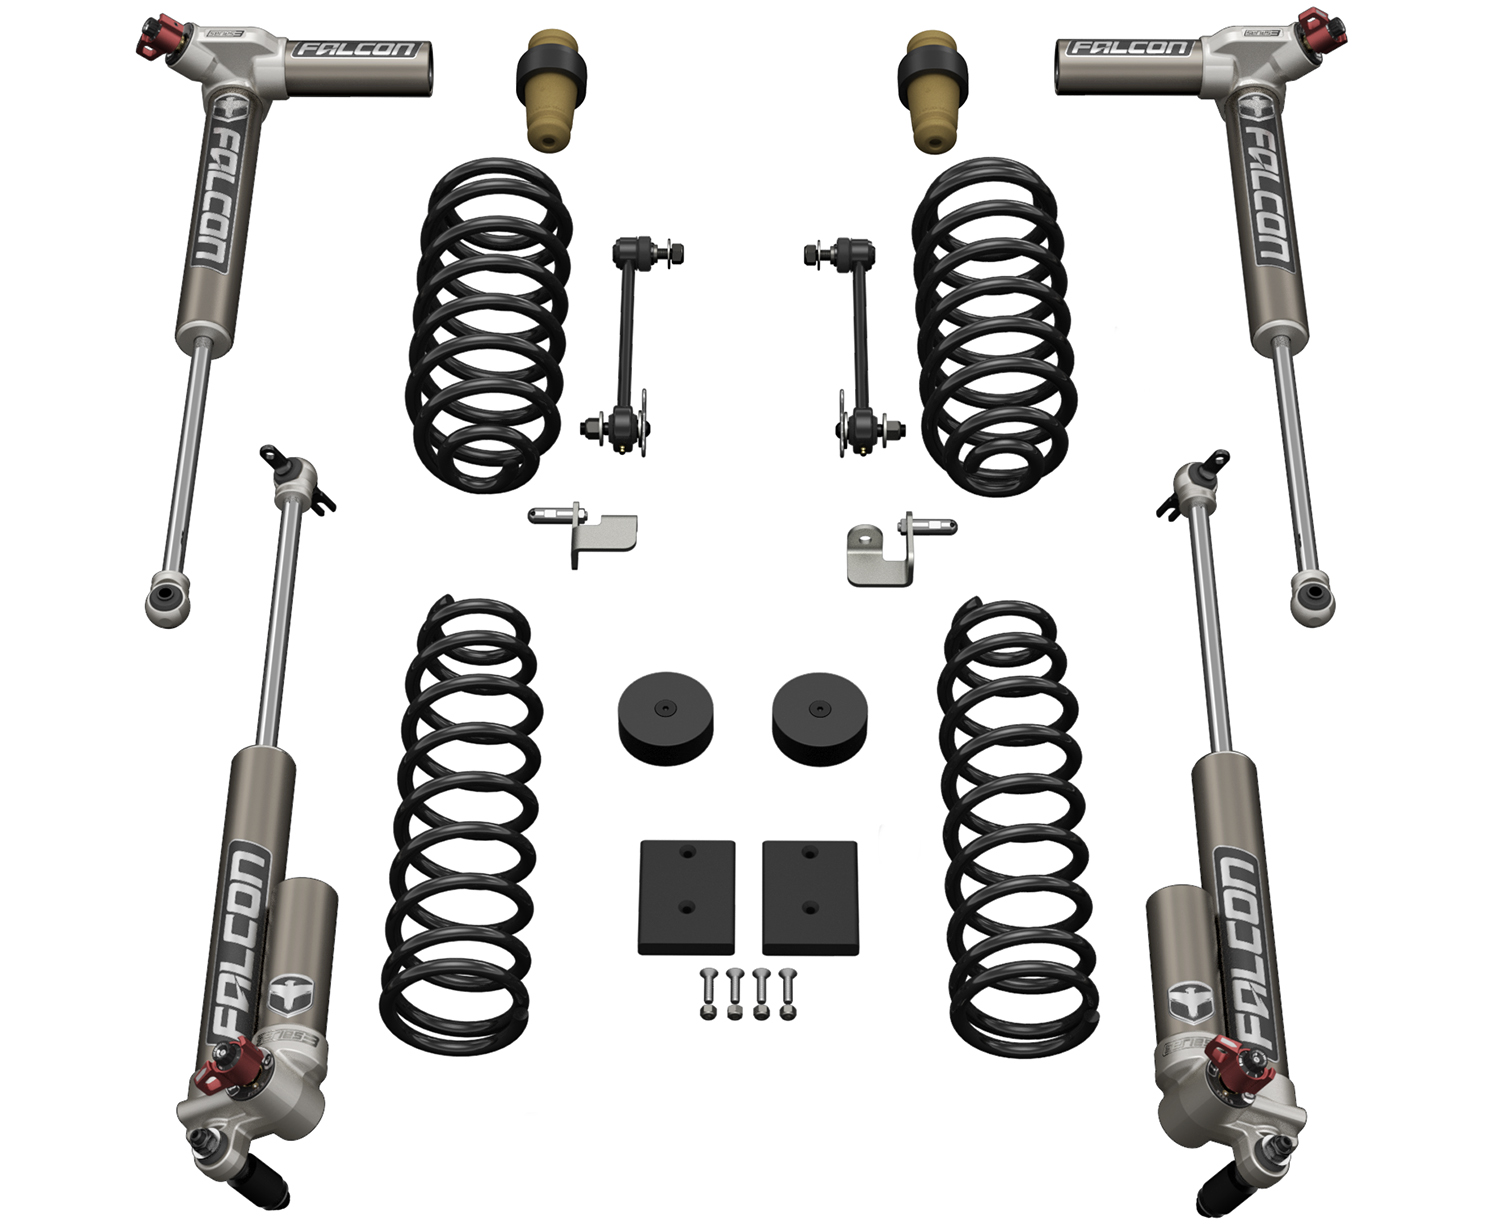 Jeep JKU 4 Door 1.5 Inch Sport ST1 Suspension System w/ Falcon 3.3 Shocks 07-18 Wrangler JKU TeraFlex 1311033